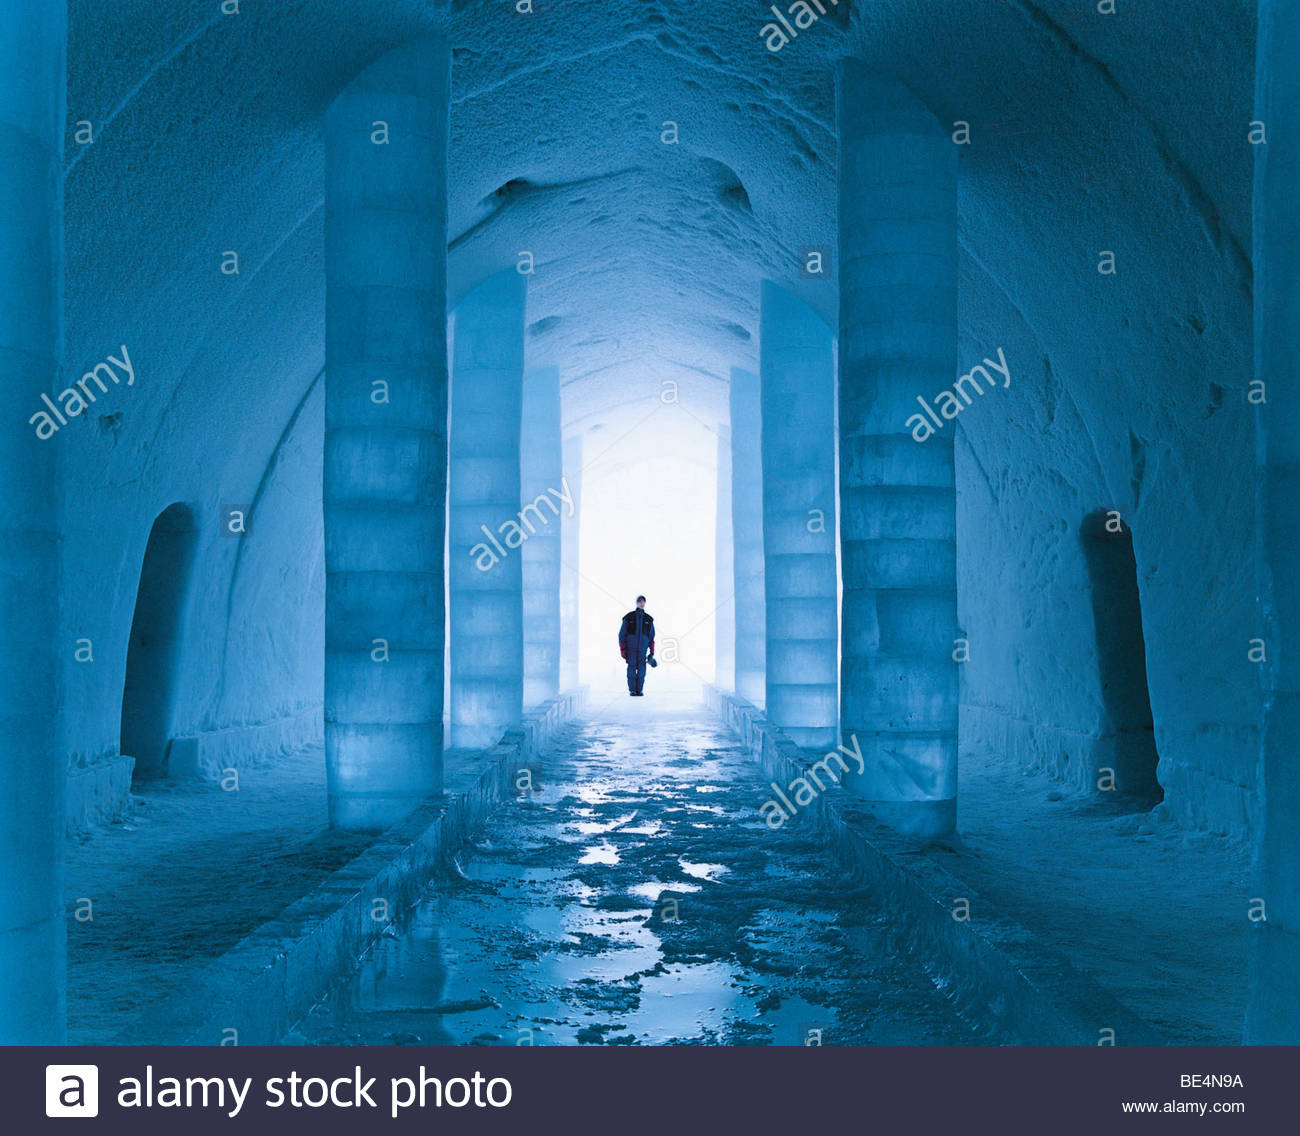 Man standing in an ice hotel, Sweden Stock Photo